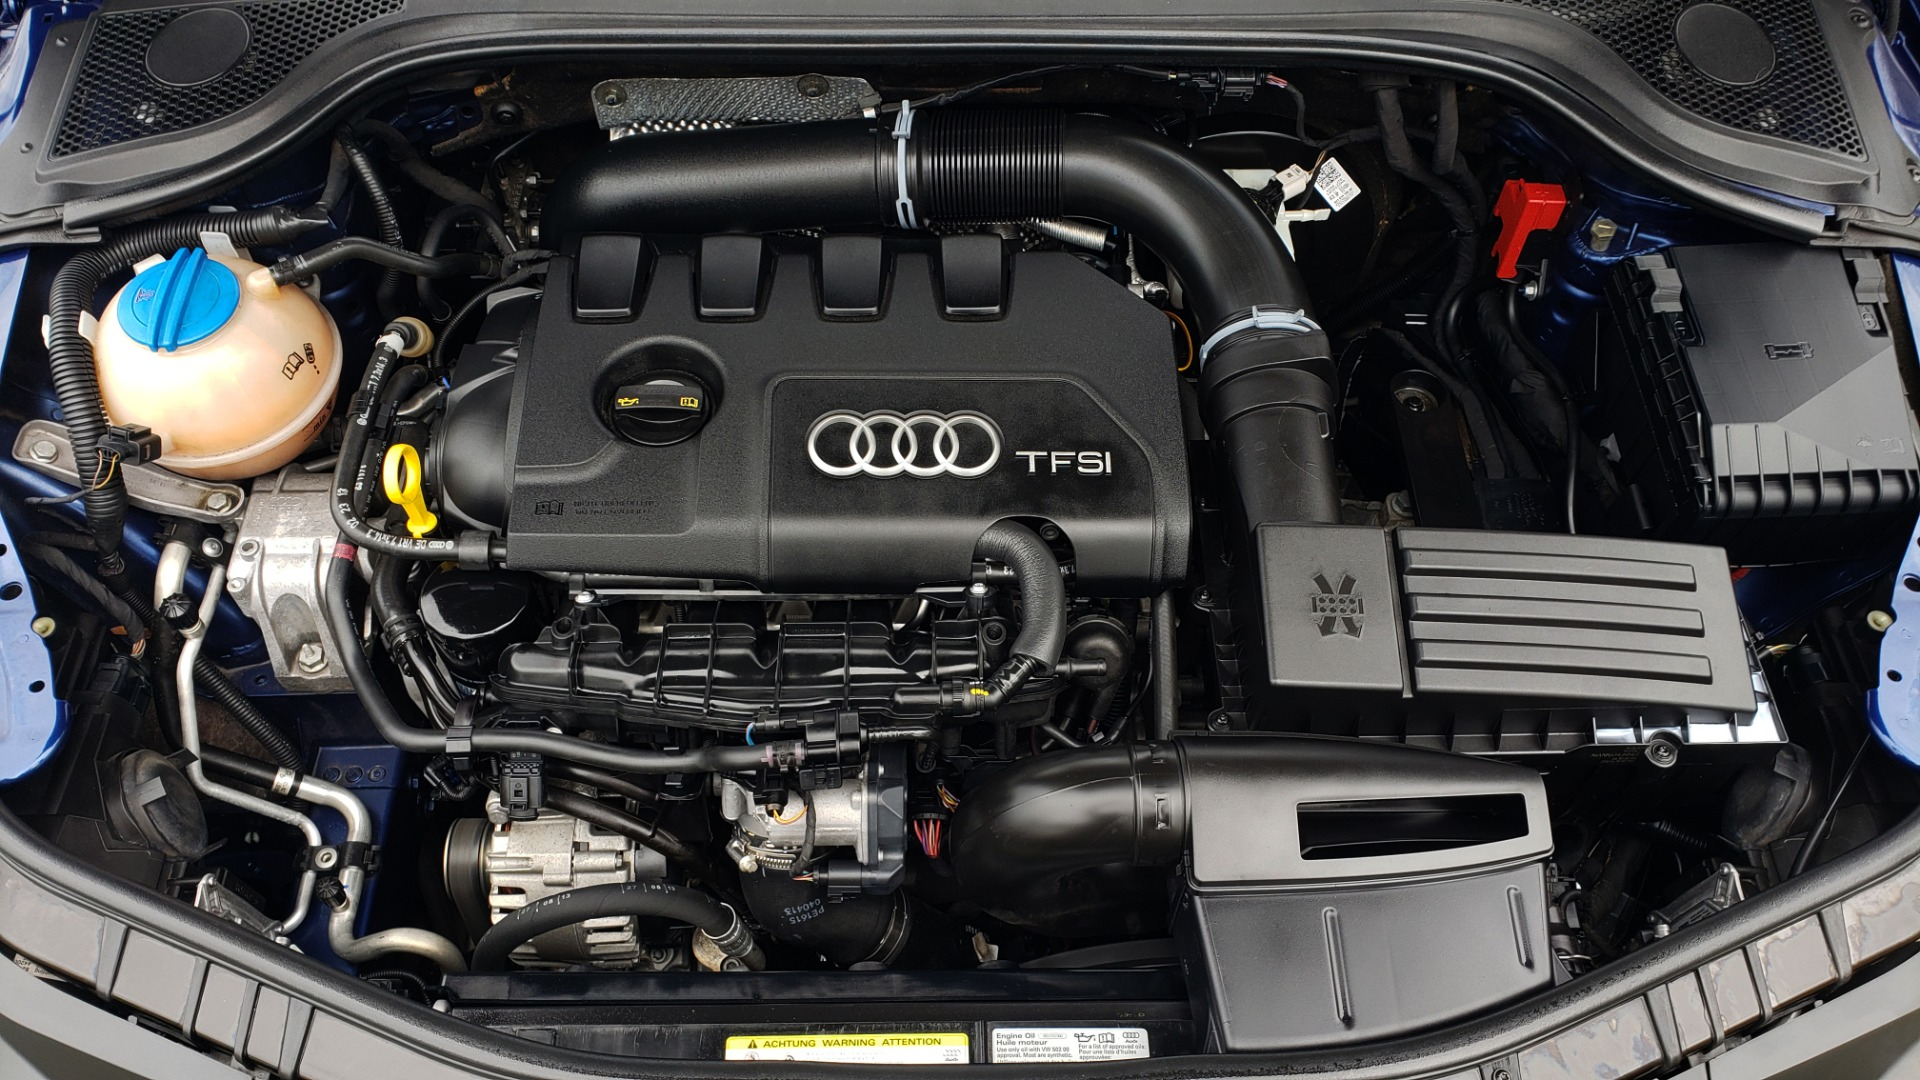 Used 2014 Audi TT 2.0T S-TRONIC / COUPE / AWD / LEATHER / HEATED SEATS for sale Sold at Formula Imports in Charlotte NC 28227 15